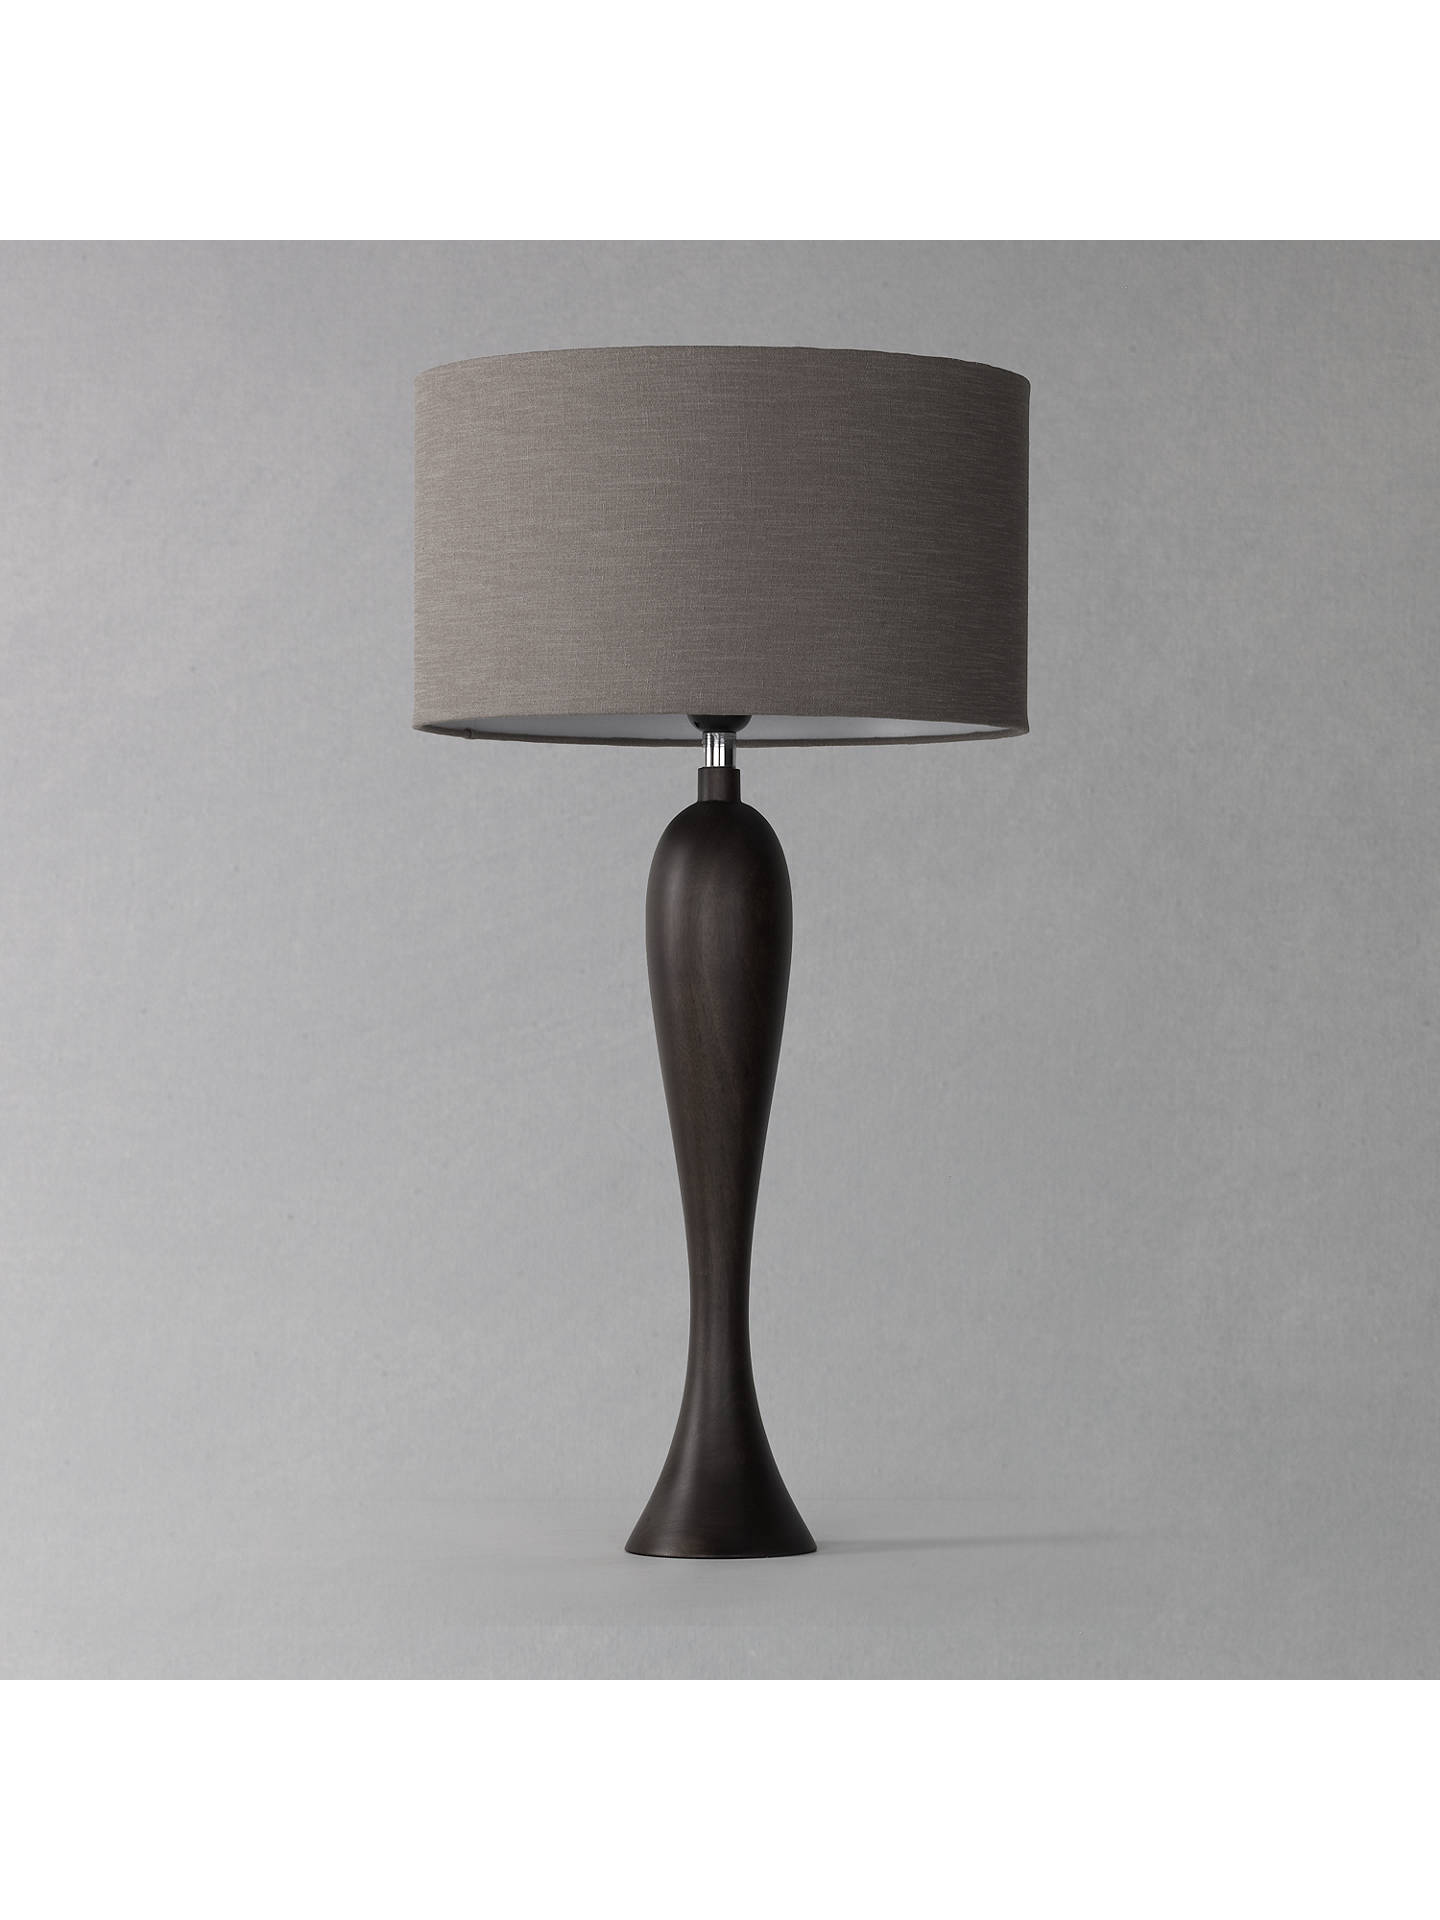 Buy John Lewis & Partners Joanna Lamp, Dark Online at johnlewis.com